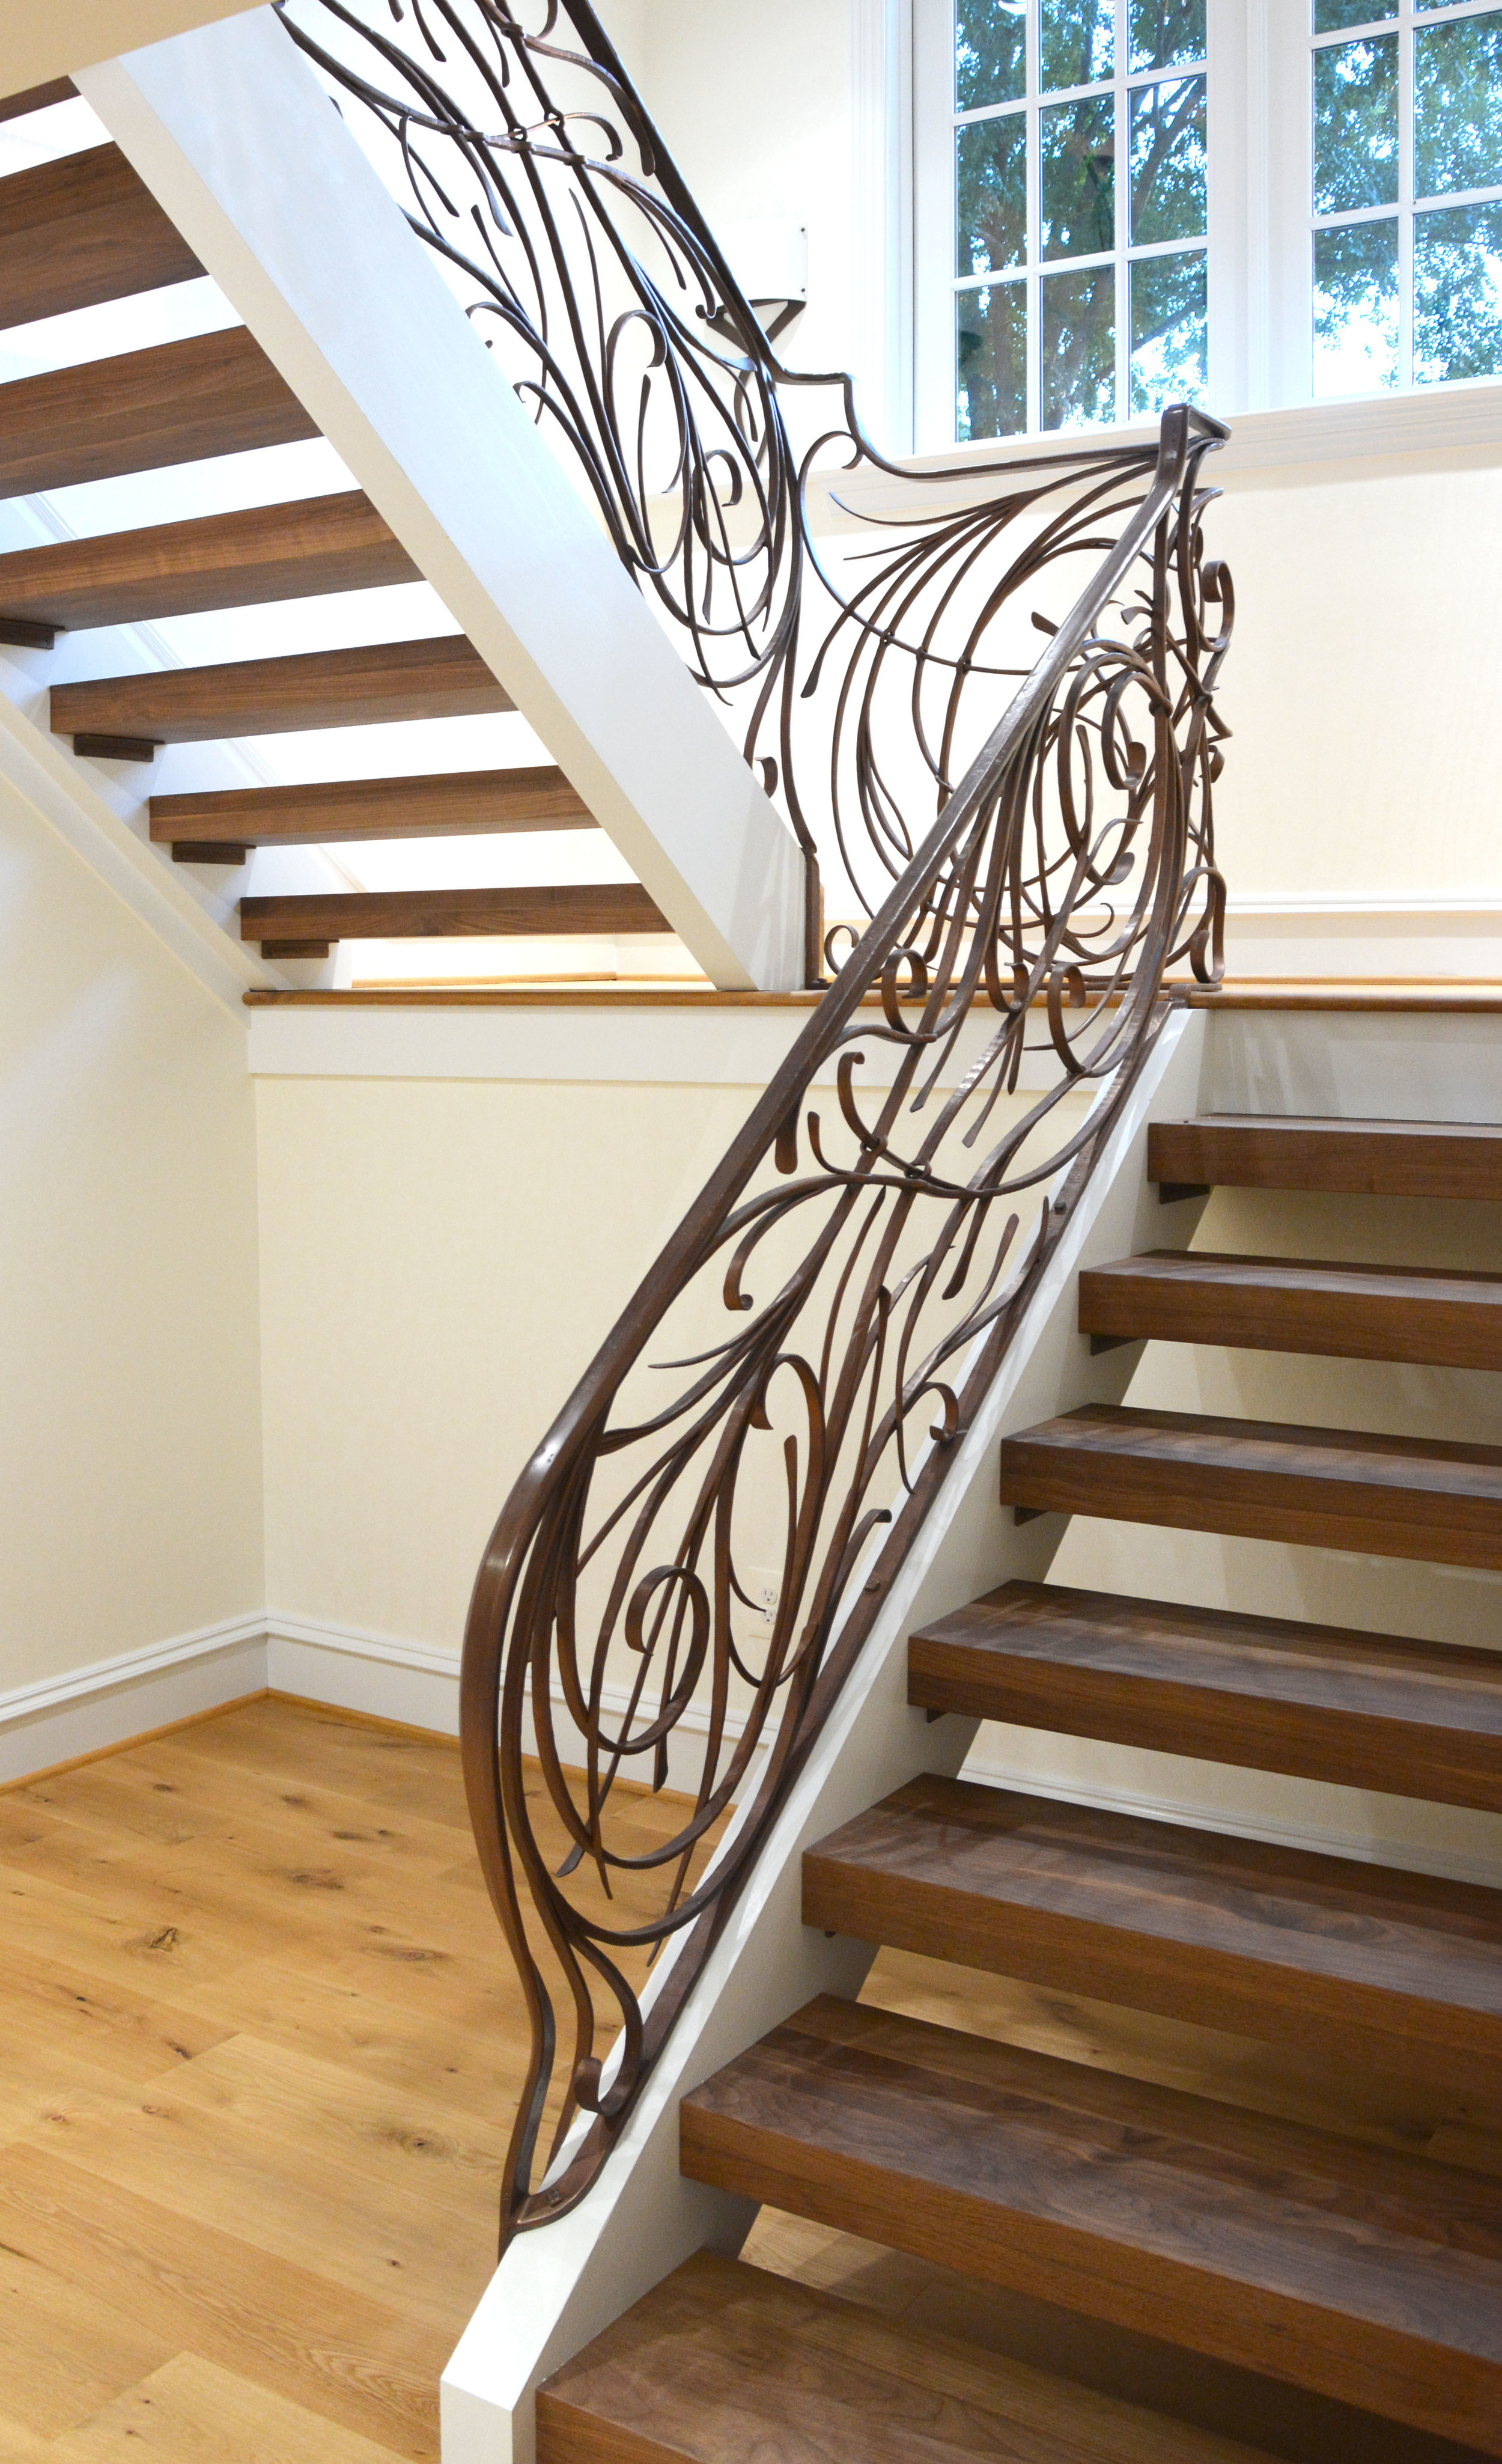 The bottom of the railing ended with the cap rail swooping down and onto the side of the stair stringer, thus creating a beginning and end to the sculptural feeling of the whole piece.